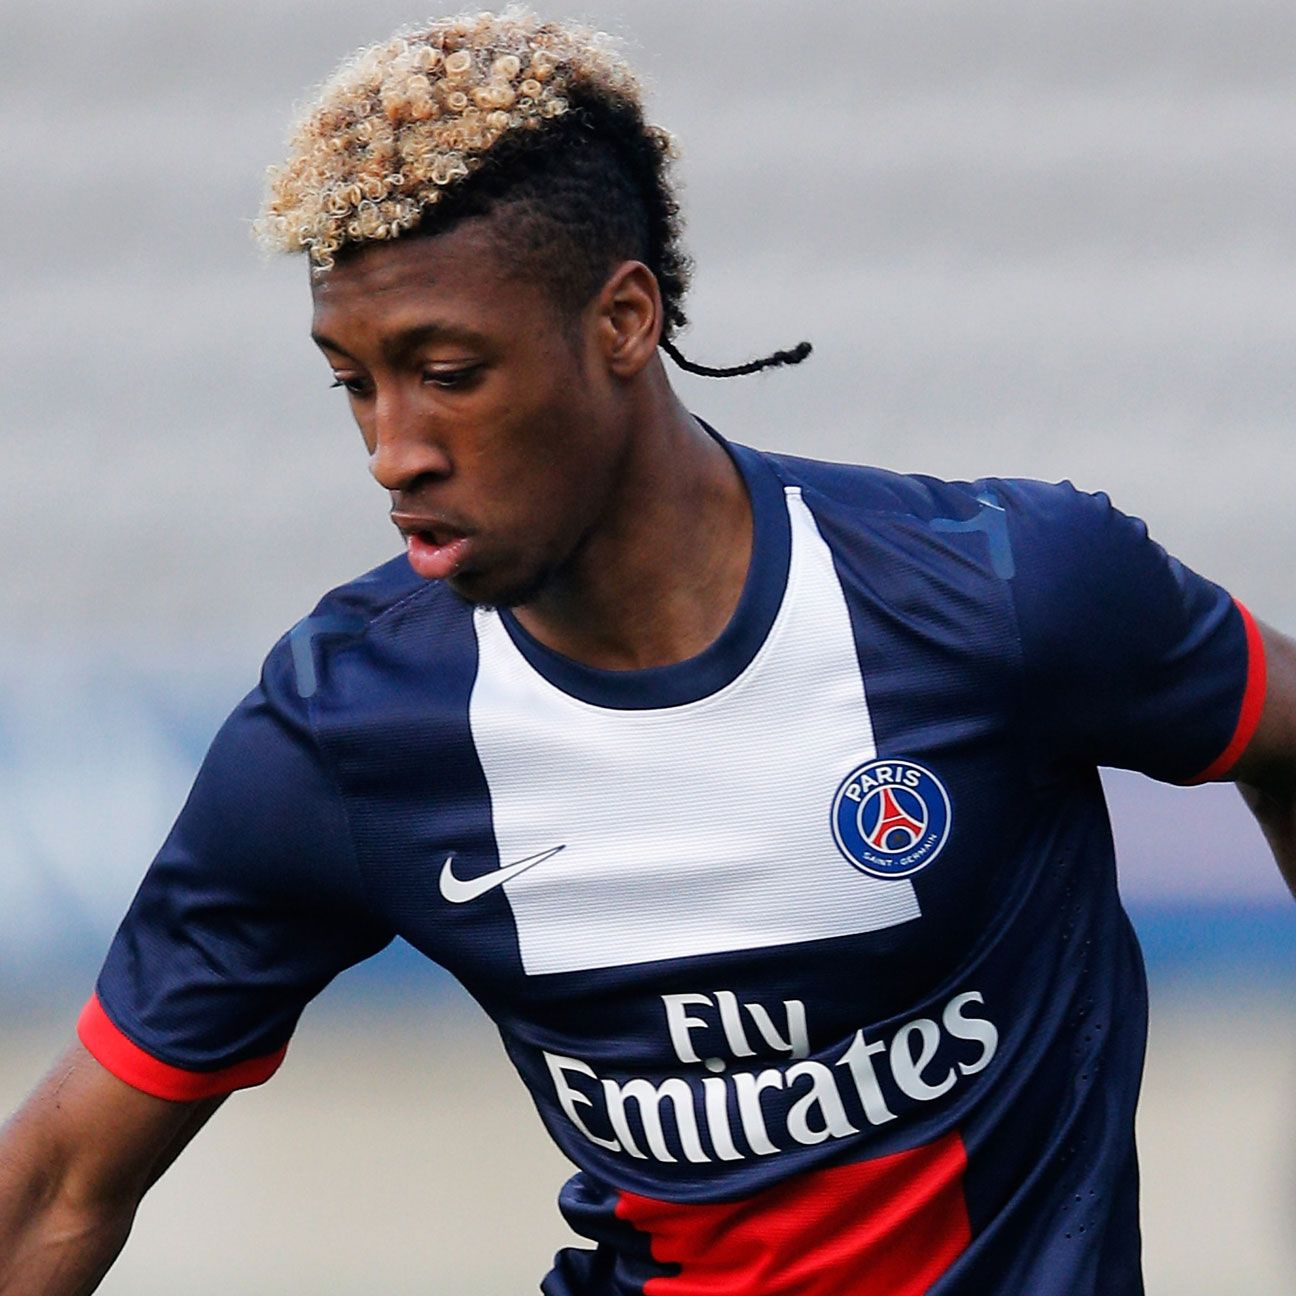 Kingsley Coman made just three Ligue 1 appearances with PSG before departing for Juventus.